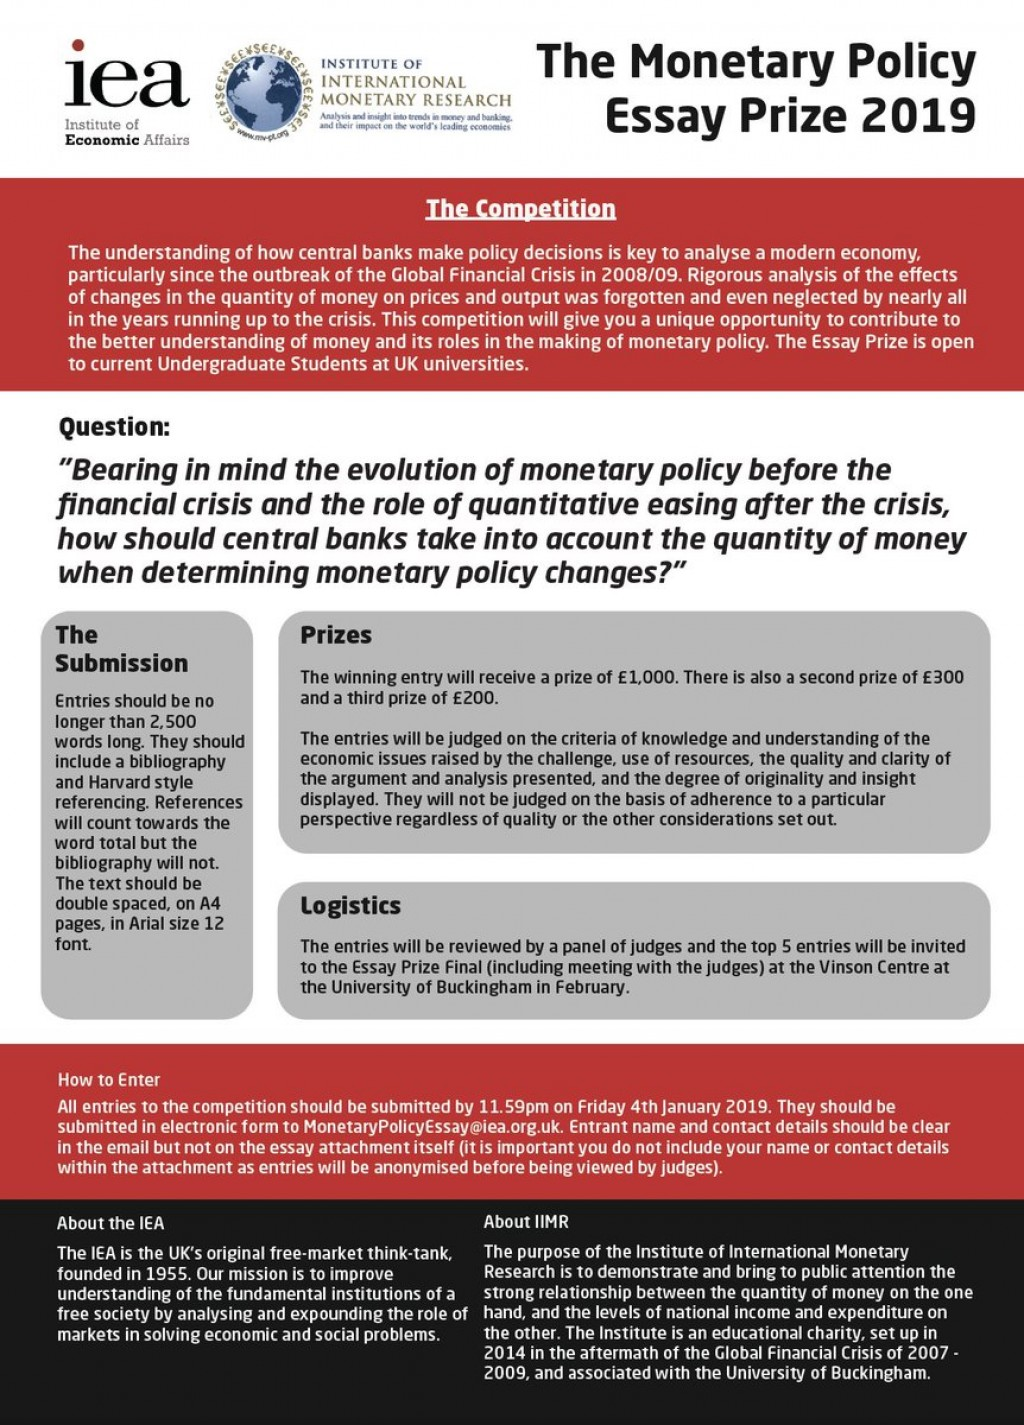 018 Monetary Policy Essay Iea On Twitter Topics Plan Research Paper Questions20 Easy Impressive Economic Large